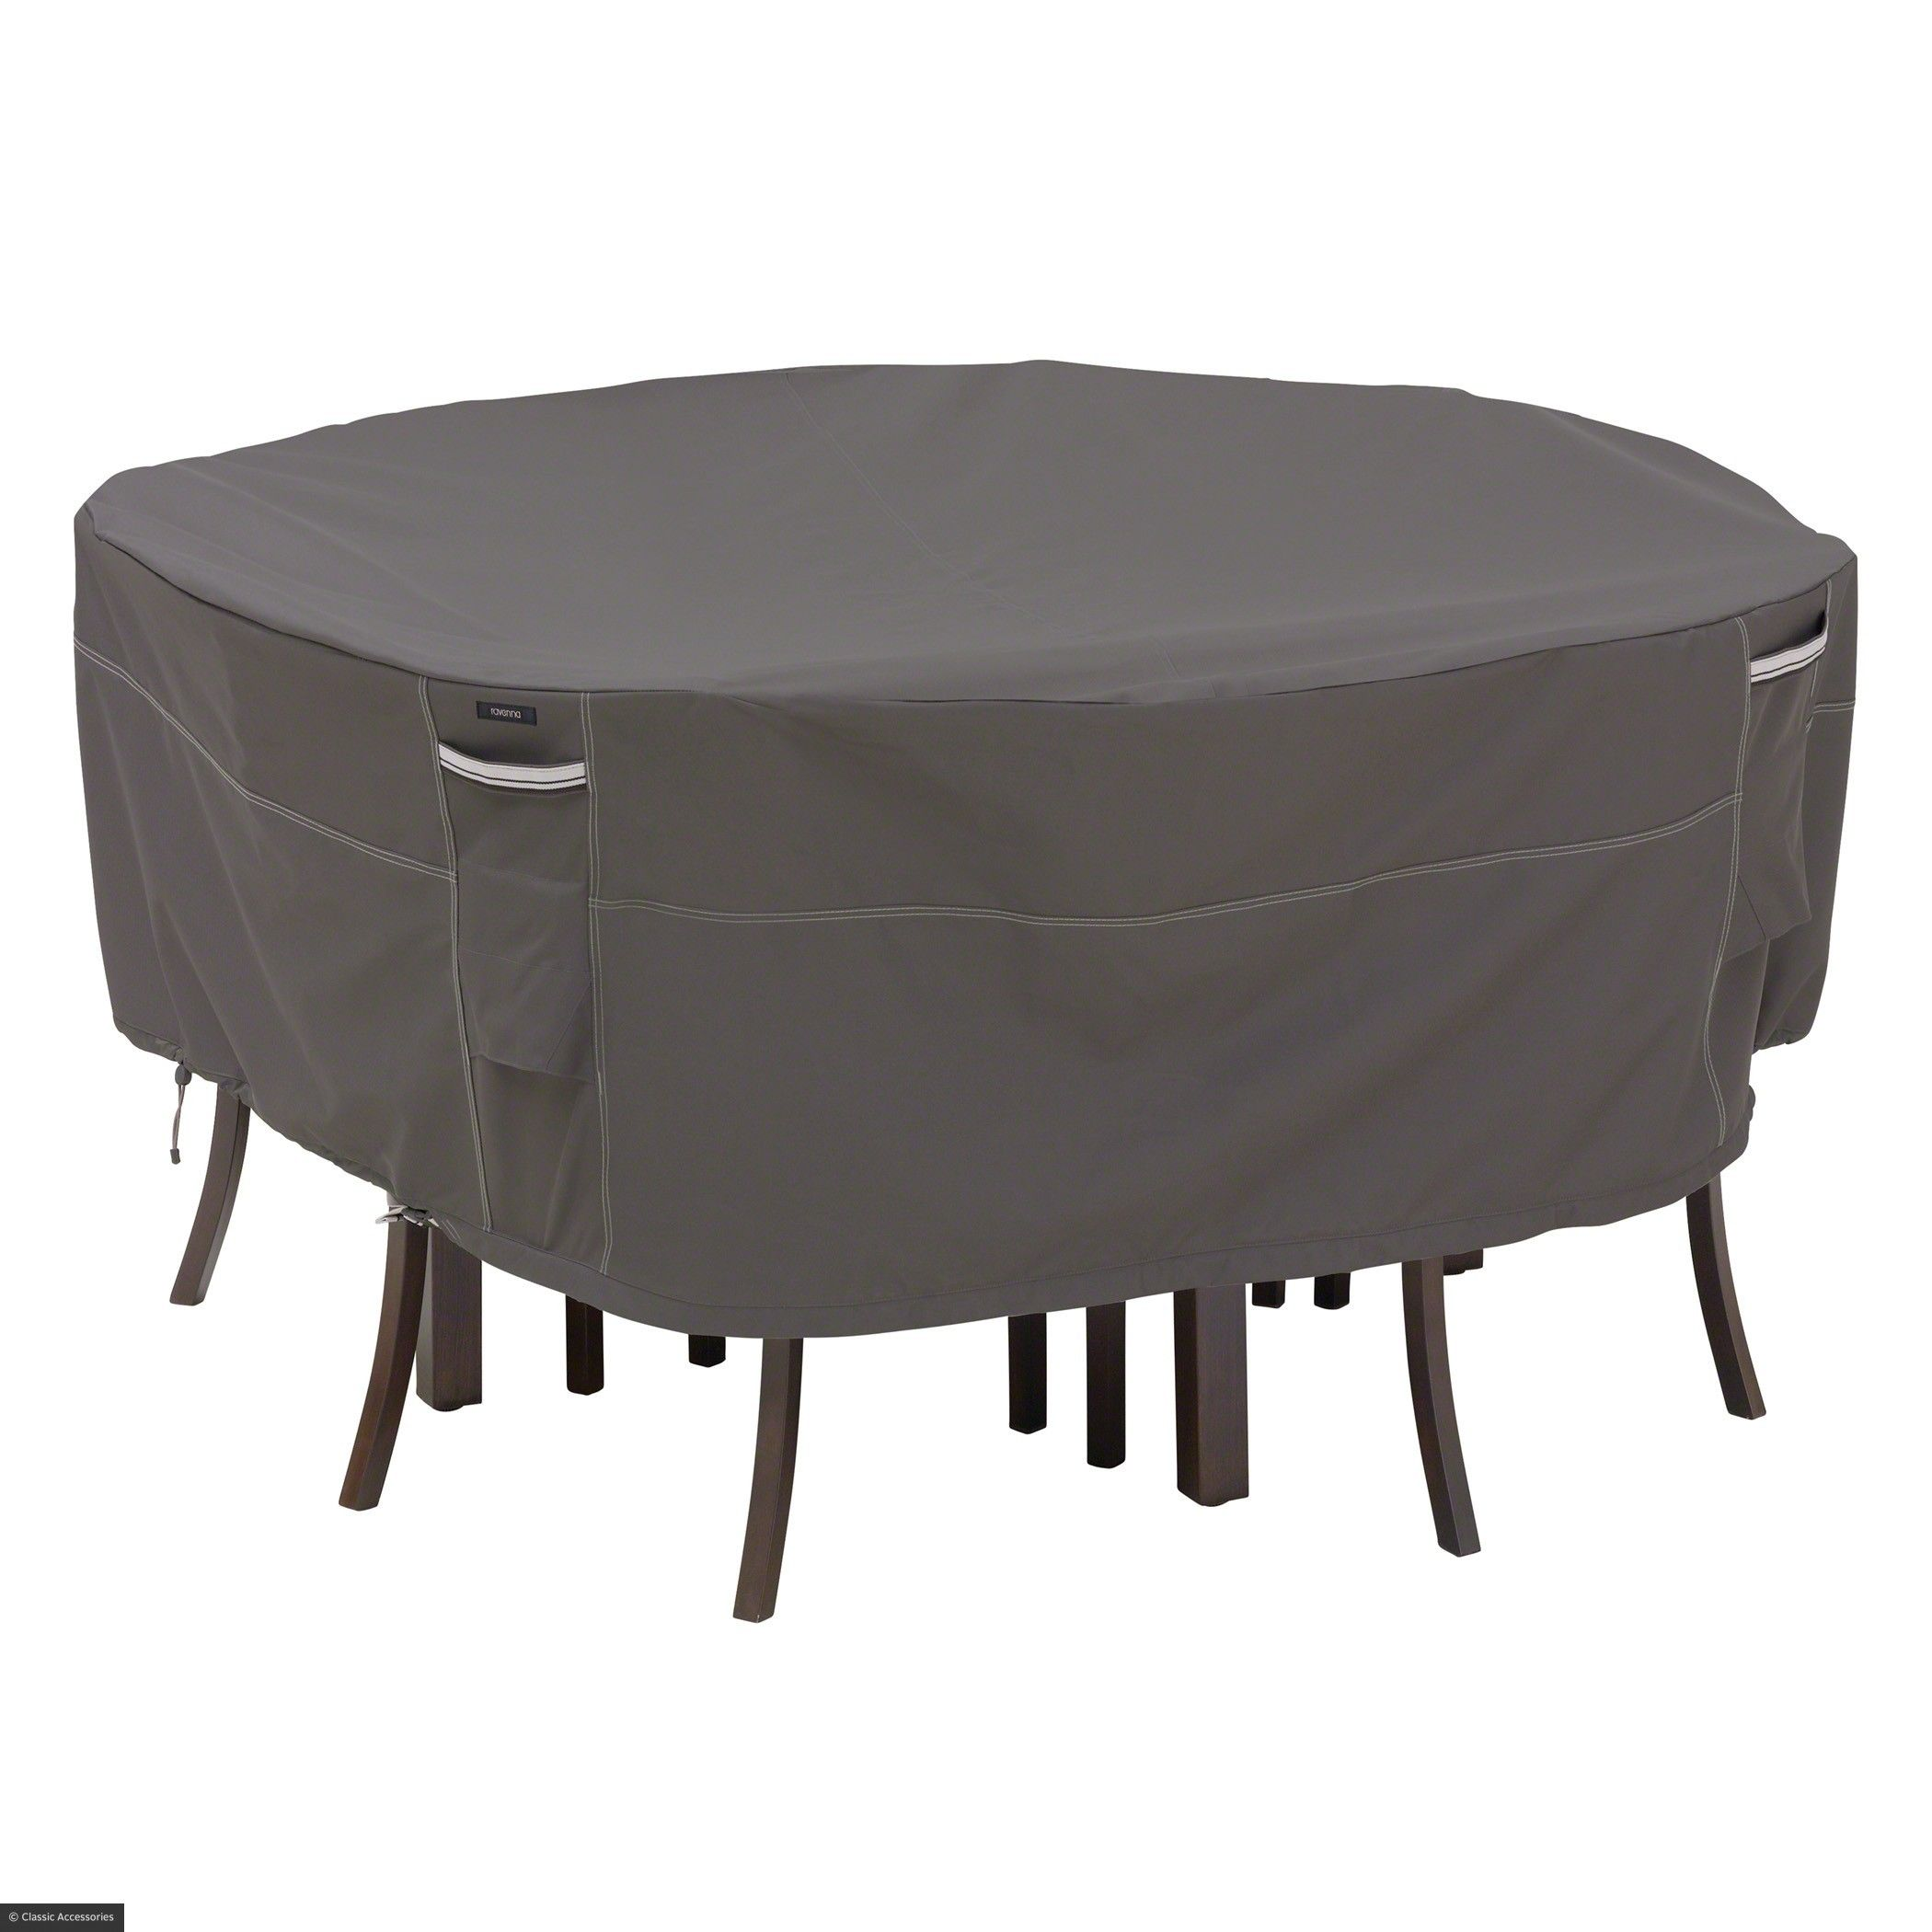 Classic Accessories Ravenna Round Patio Table u0026 Chair Set Cover Extra Large As Shown  sc 1 st  Pinterest & Round Patio Table Cover | Furniture Ideas | Pinterest | Round patio ...